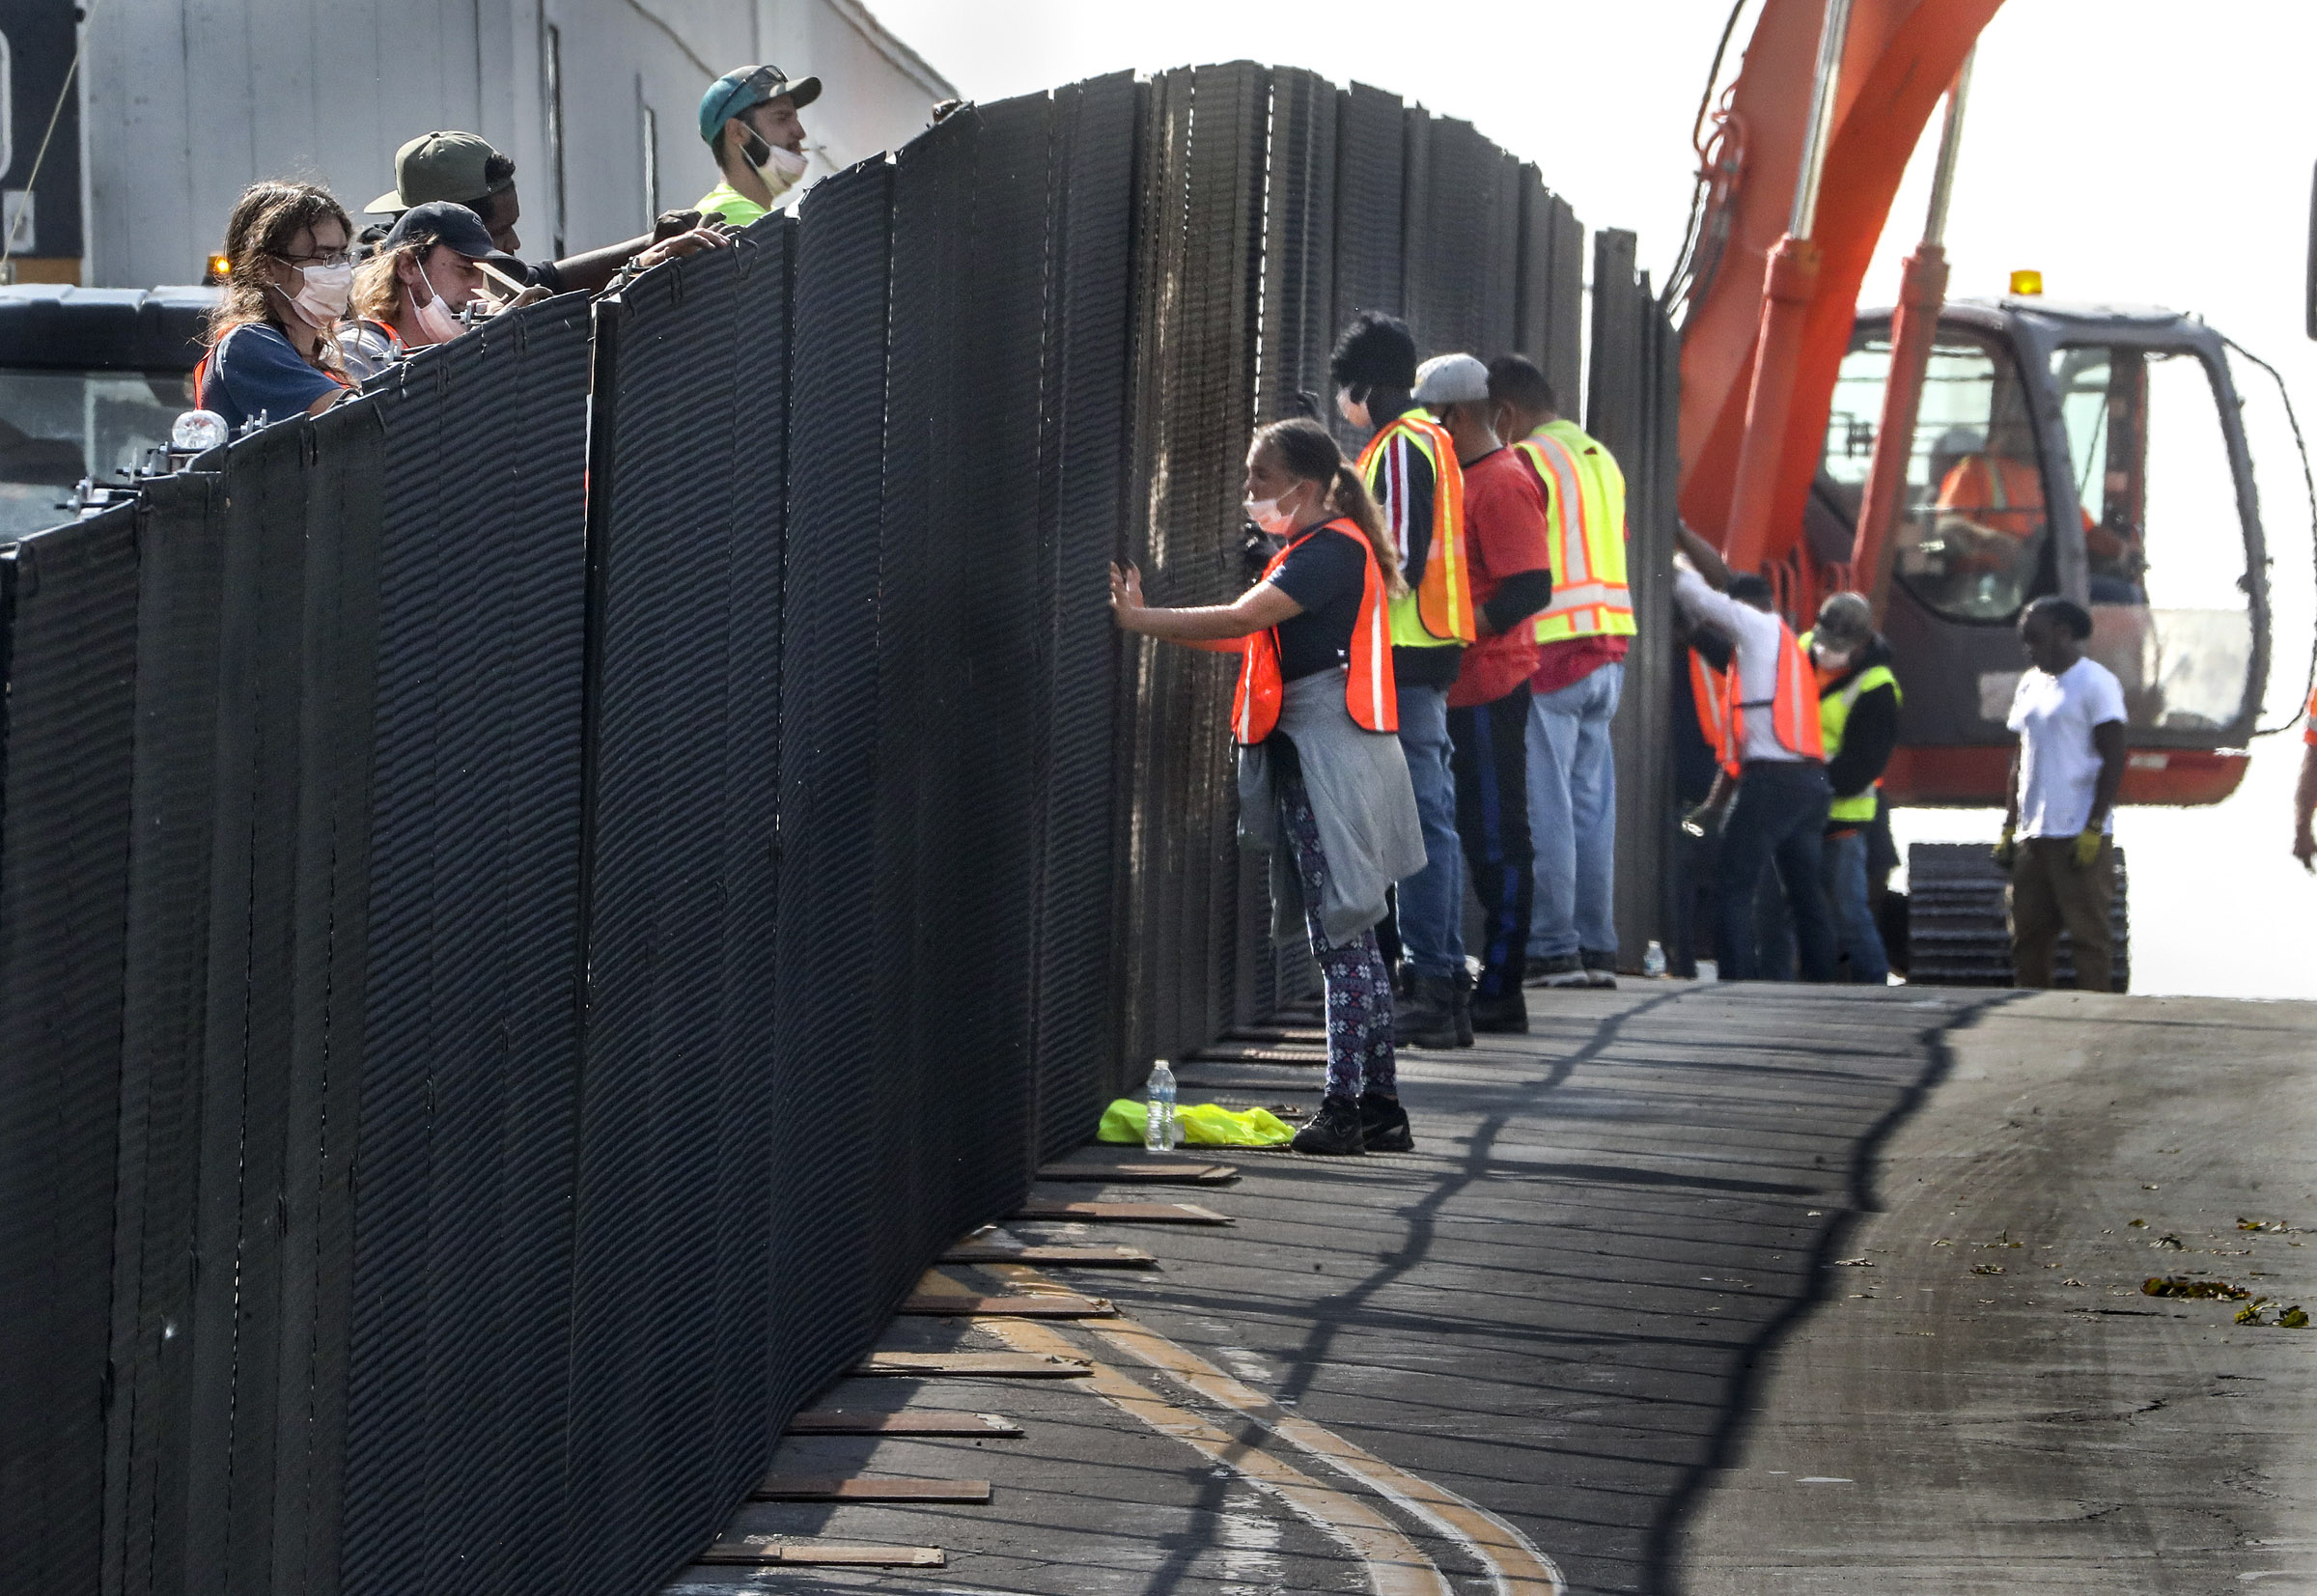 Crews work to build a barrier fence along University Street in front of President's Circle near 100 South prior to the vice presidential debate in Kingsbury Hall on the University of Utah campus in Salt Lake City on Monday, Oct. 5, 2020. The debate between Vice President Mike Pence and Sen. Kamala Harris, the Democratic nominee for vice president, is scheduled for Wednesday.